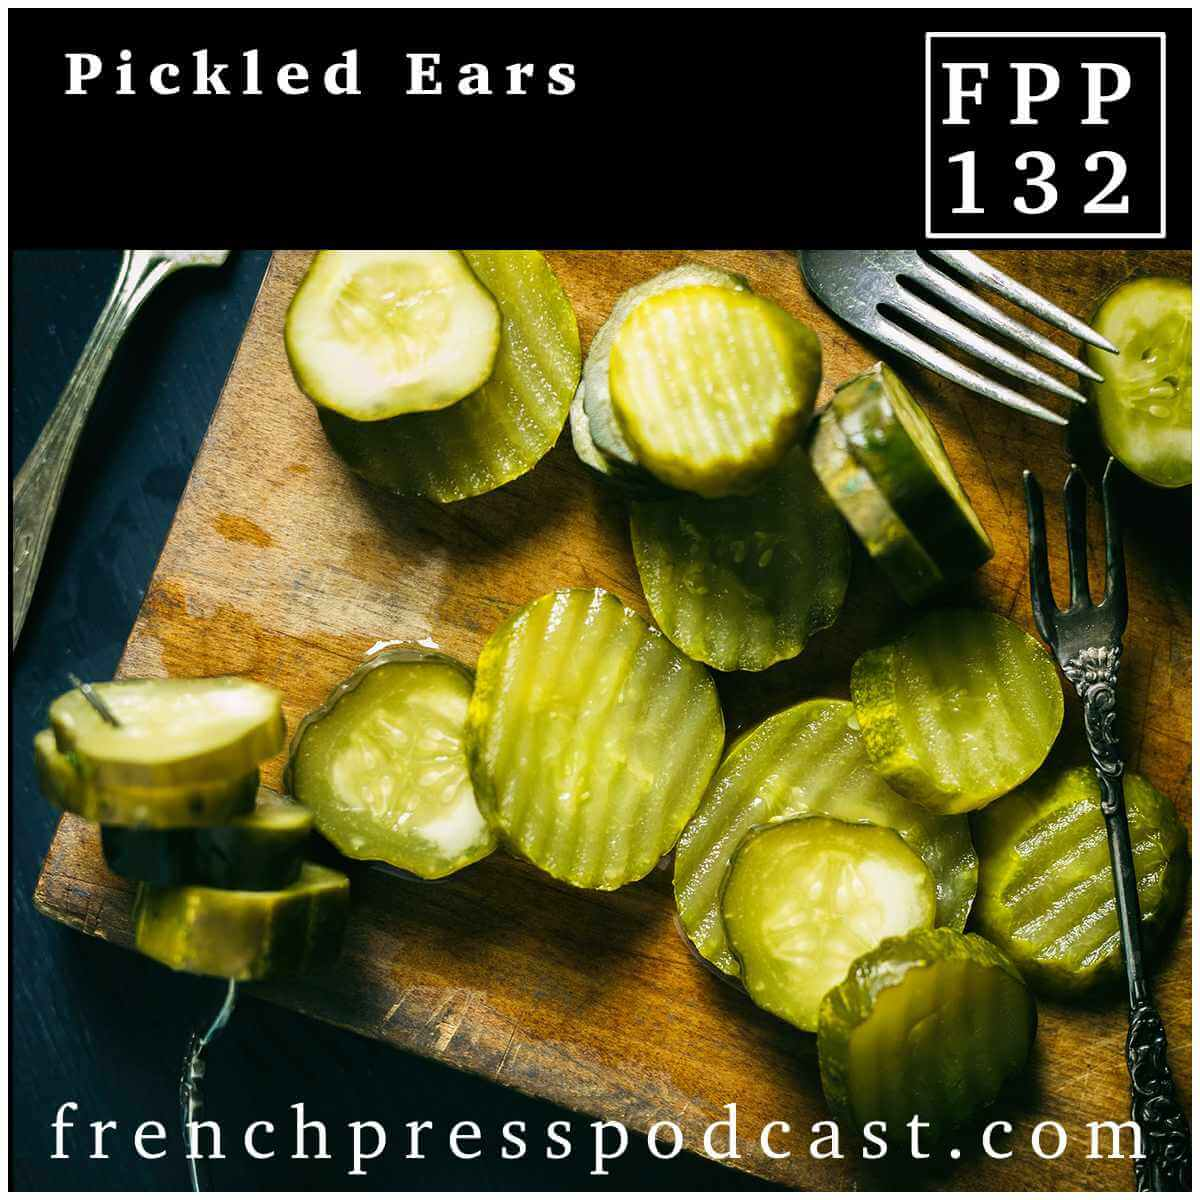 Pickled Ears